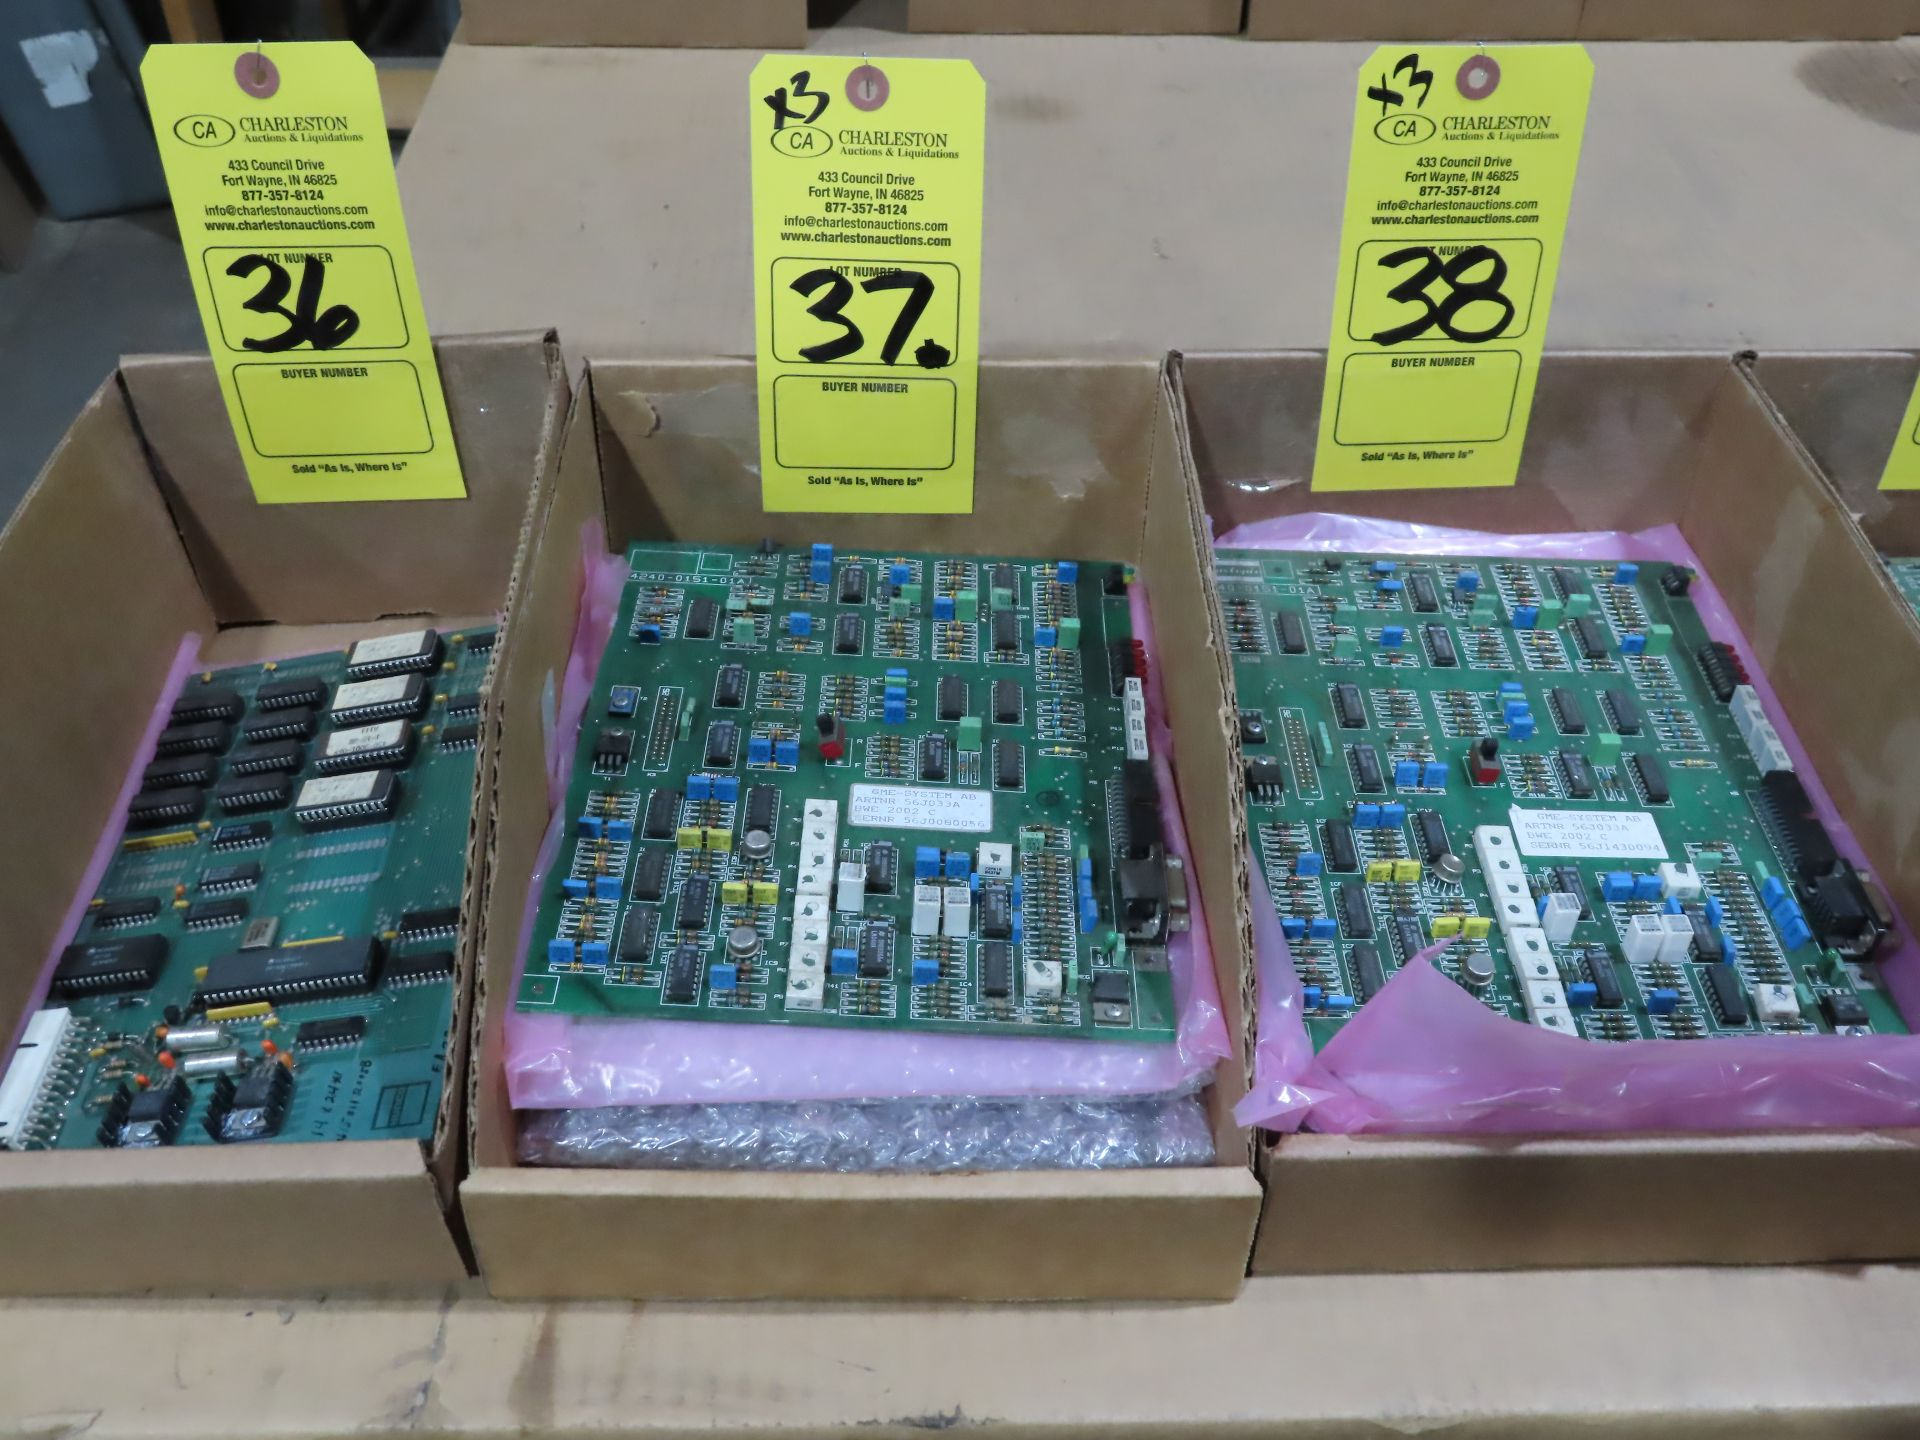 Lot 37 - Qty 3 Altas Copco model 56J033A control boards, as always, with Brolyn LLC auctions, all lots can be